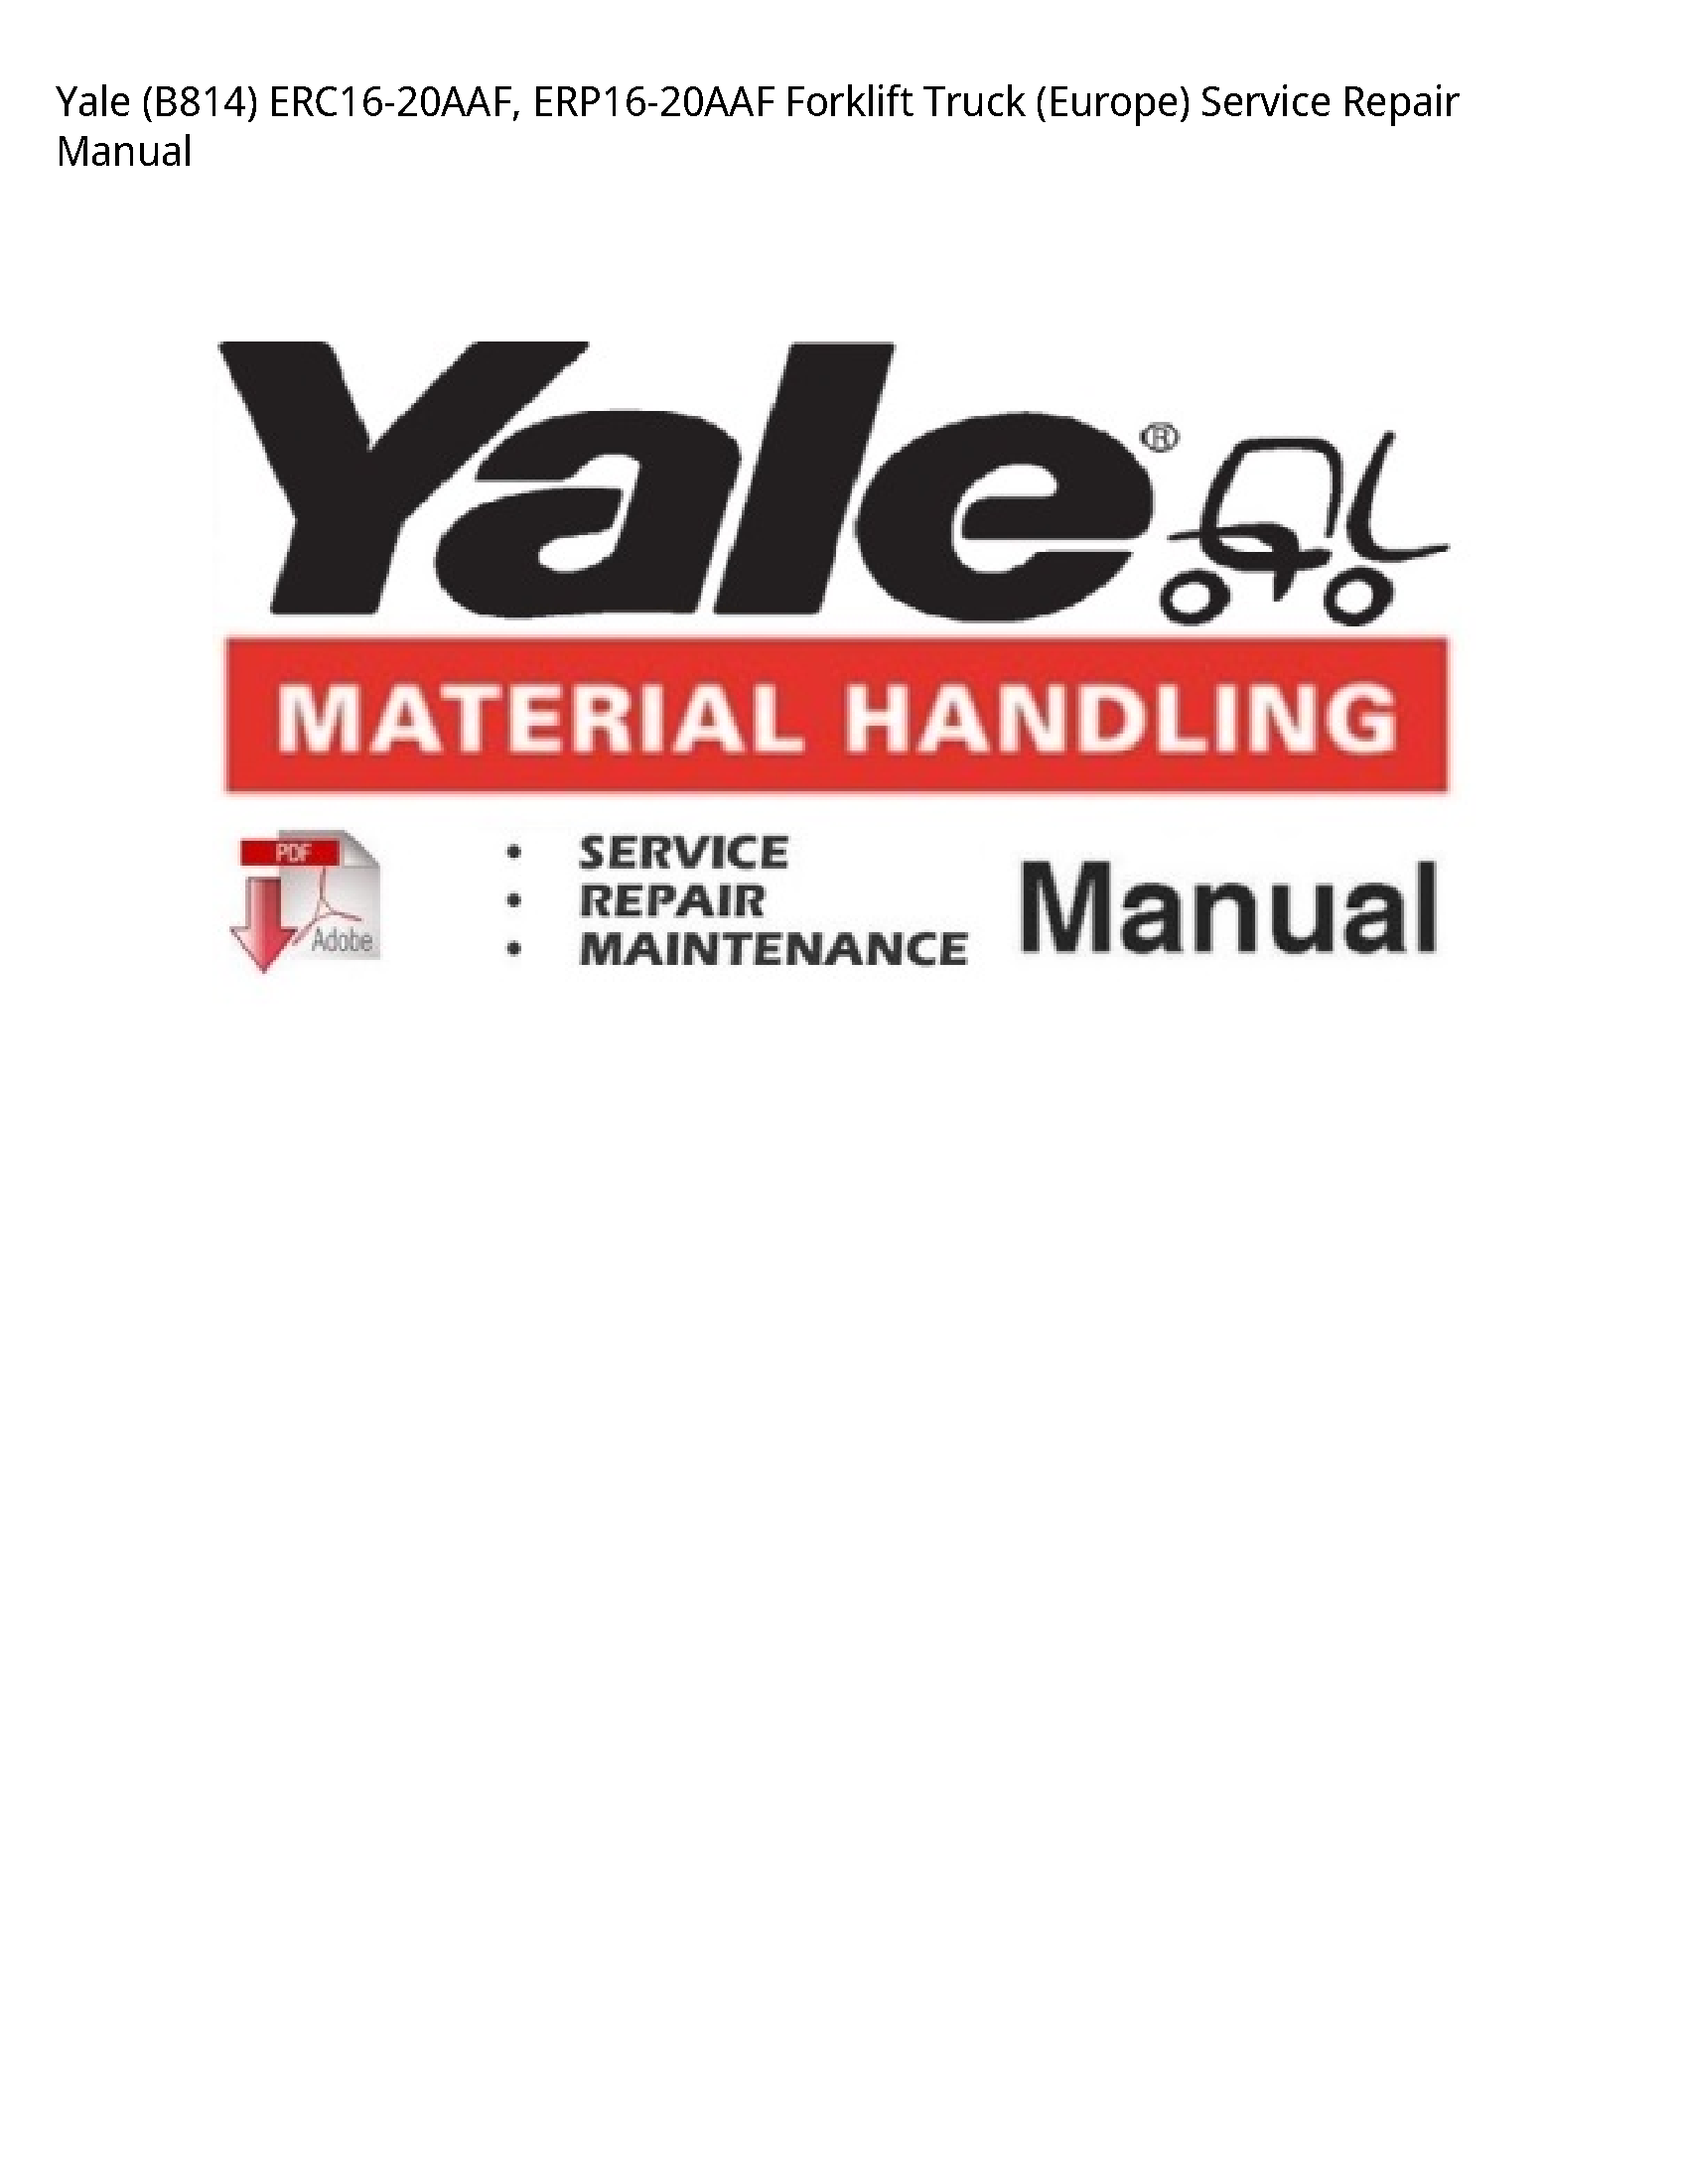 Yale (B814) Forklift Truck (Europe) manual